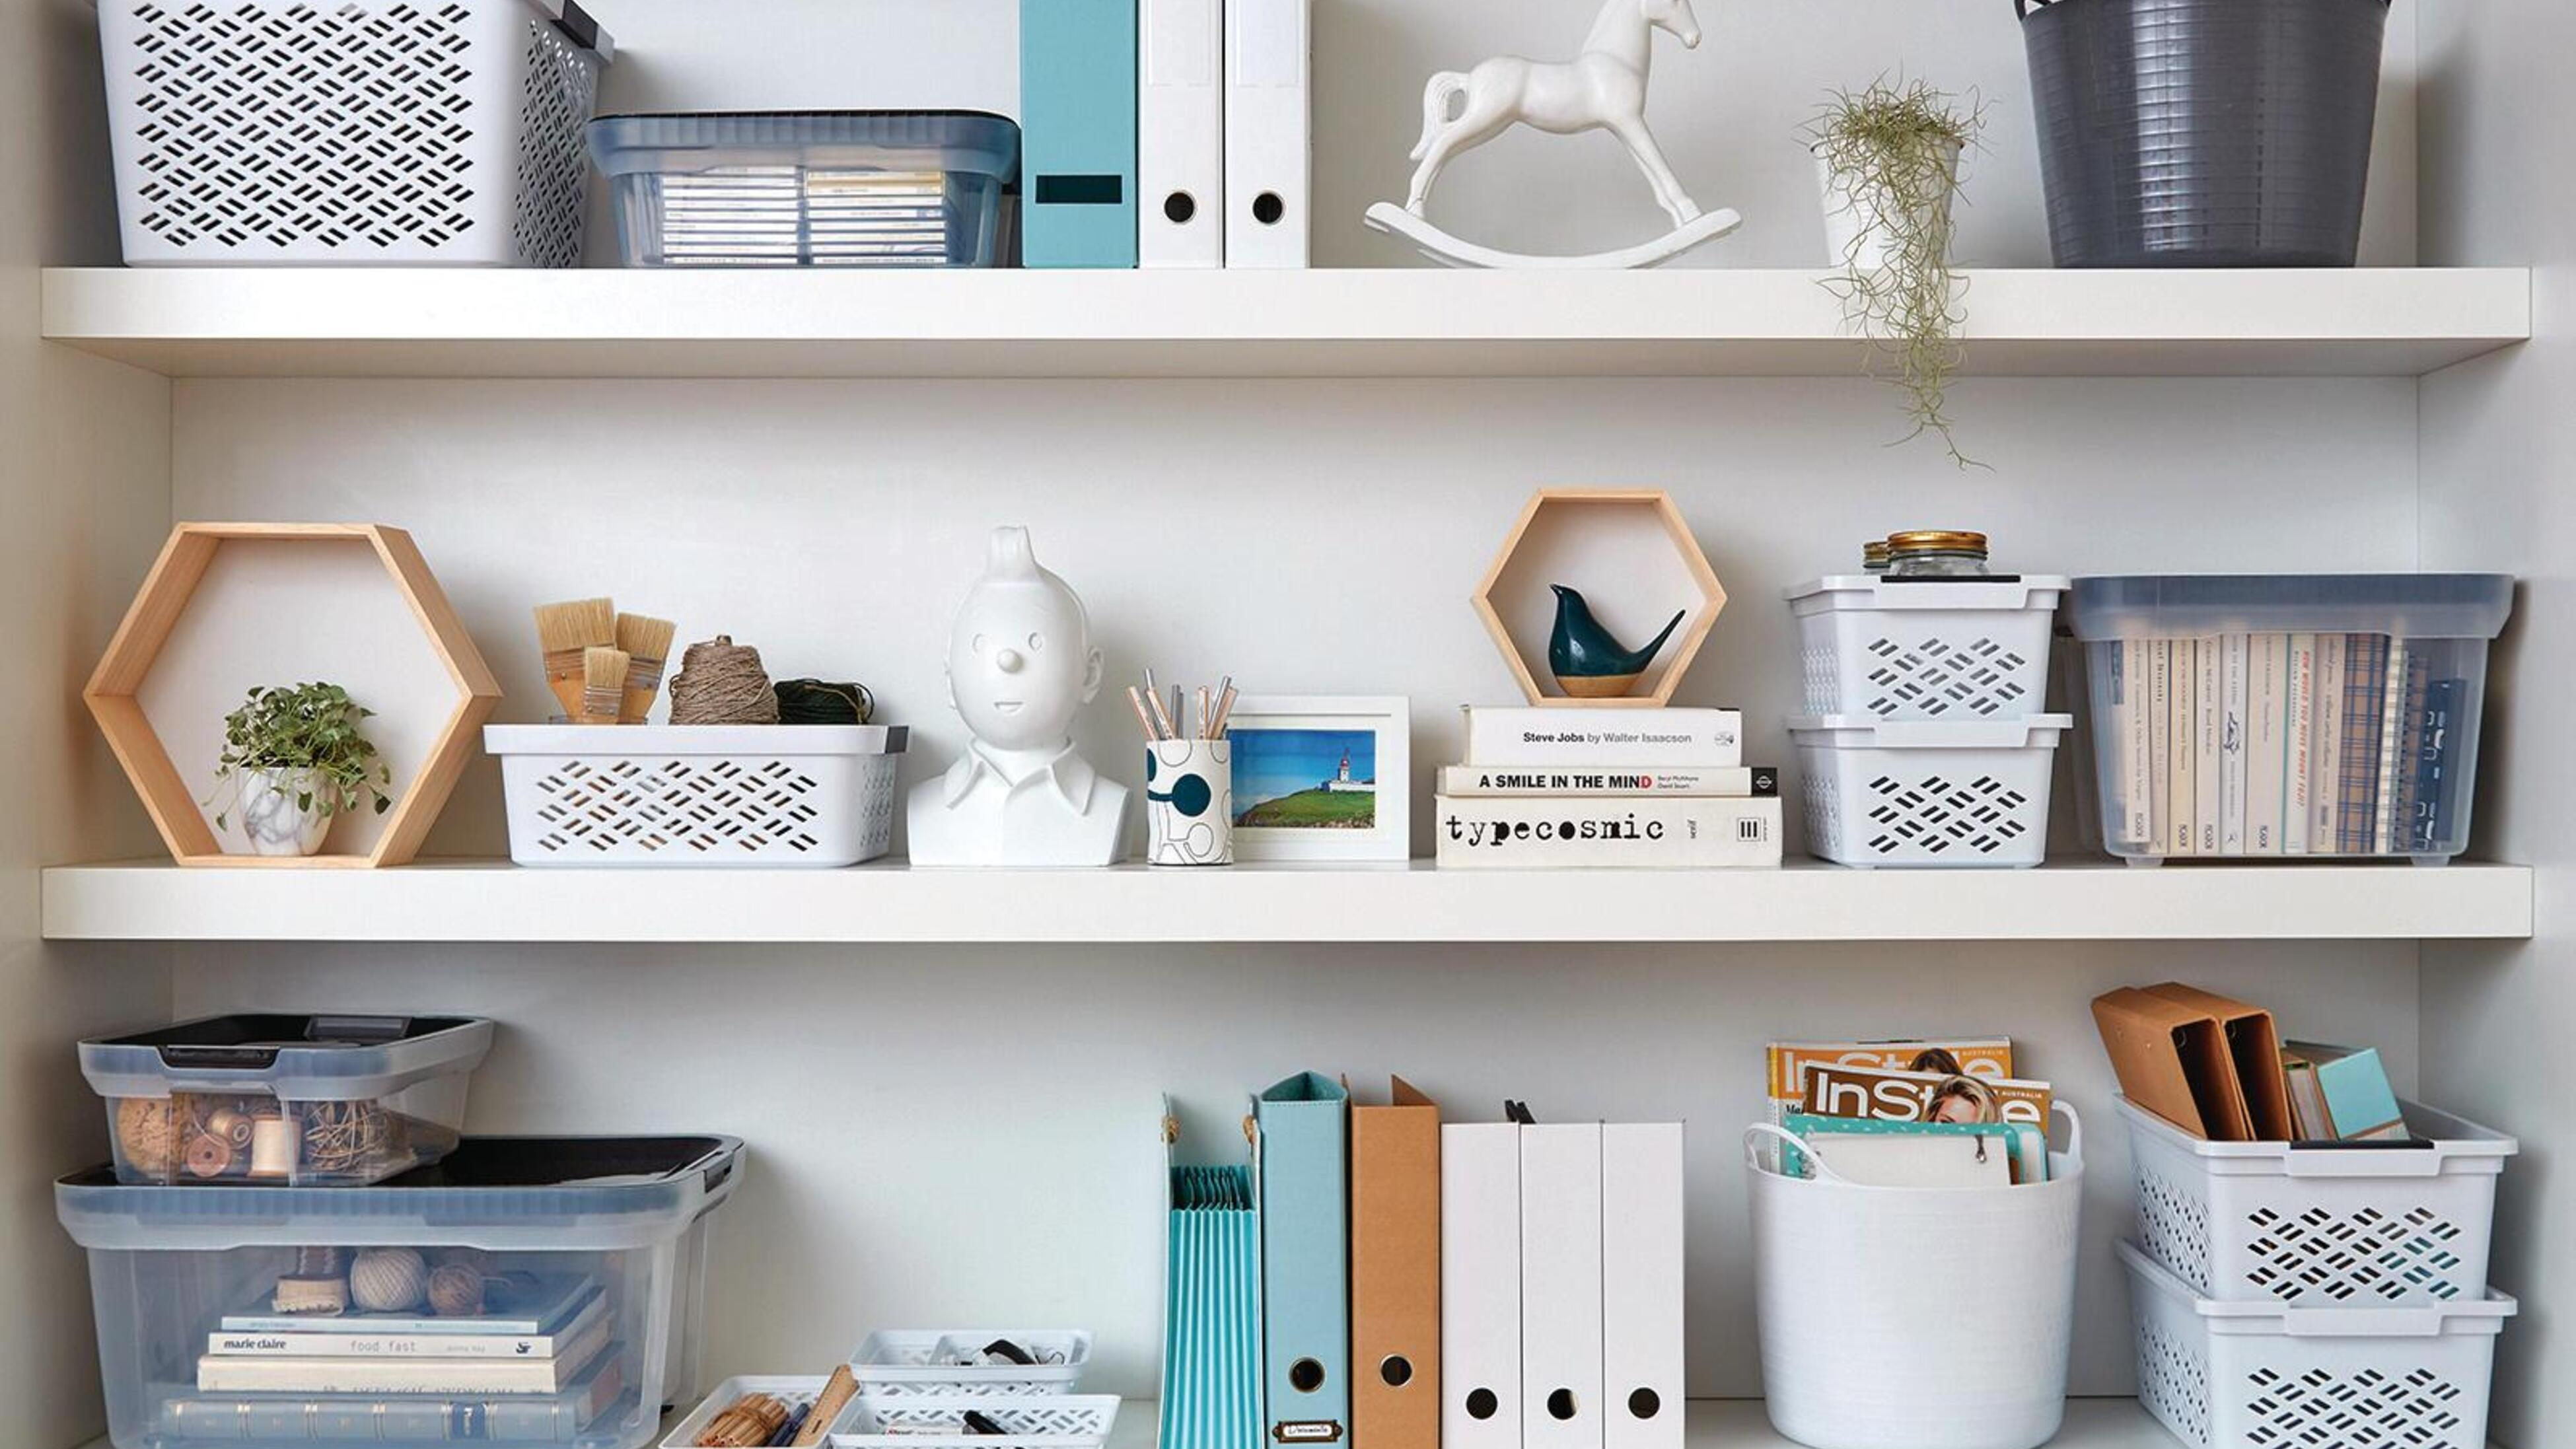 A neatly styled shelf with folders and storage boxes.